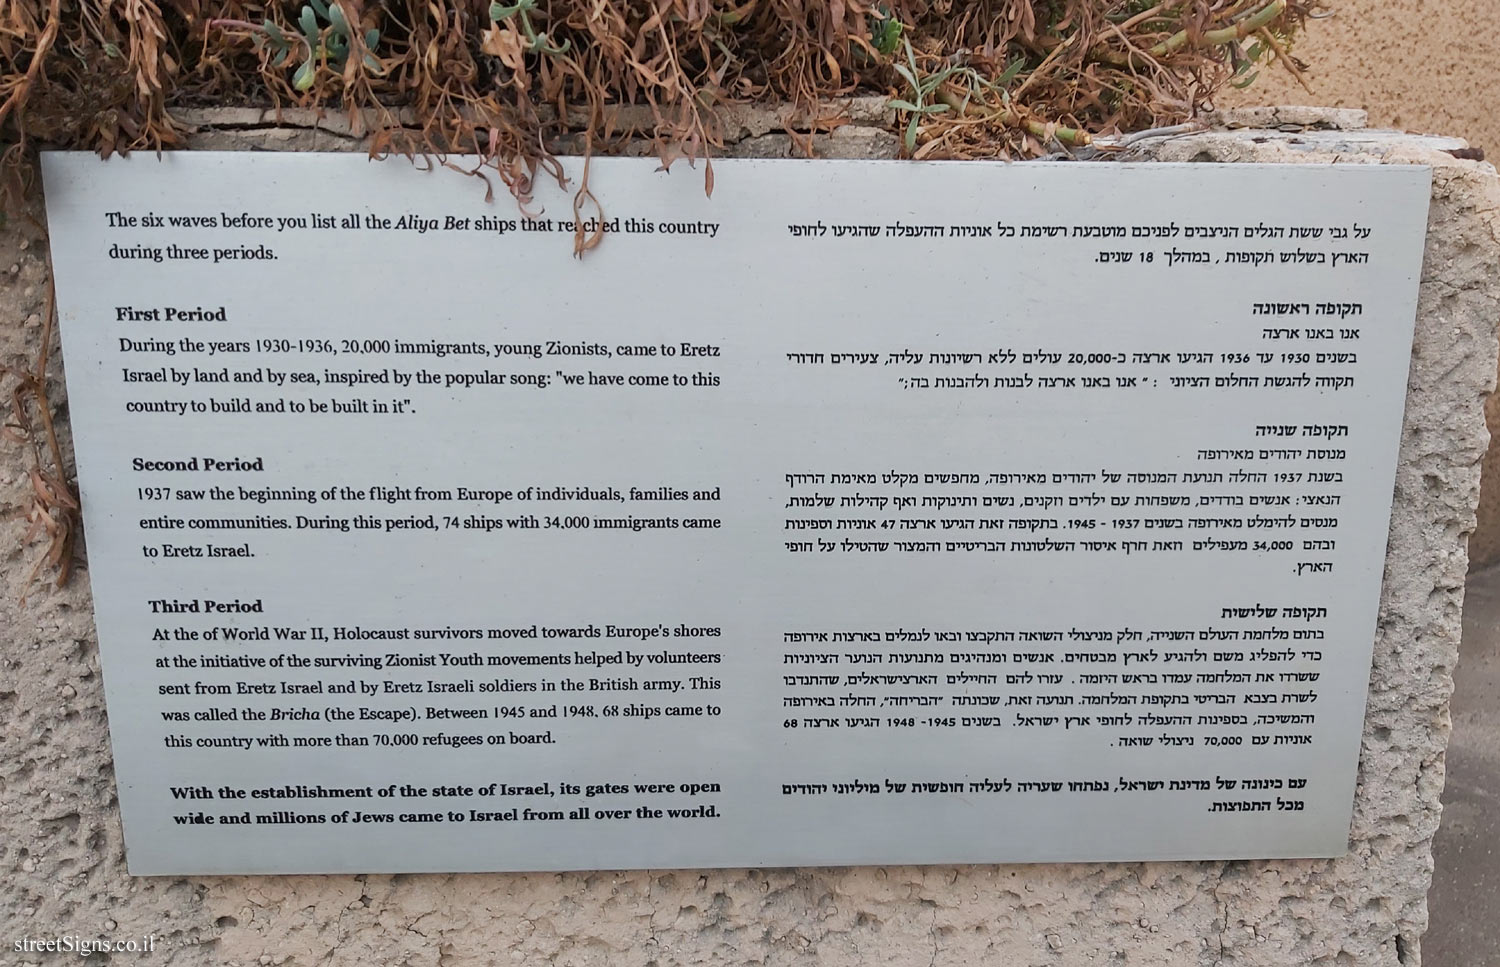 Tel Aviv - London Garden - The story of the illegal immigration - The periods of immigration